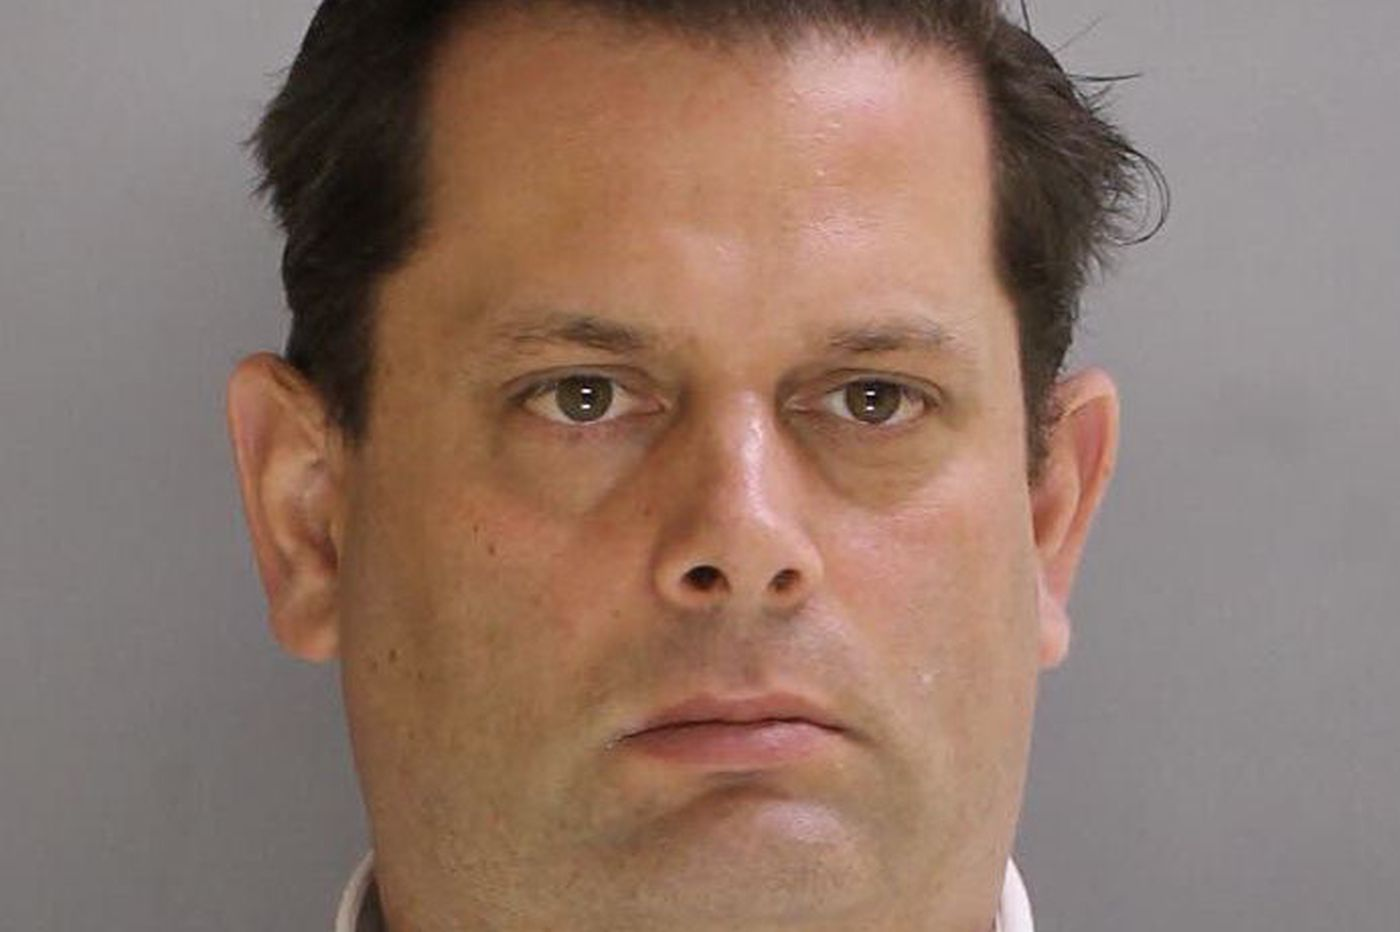 A Chester County property manager embezzled almost $1 million from condo associations, DA says